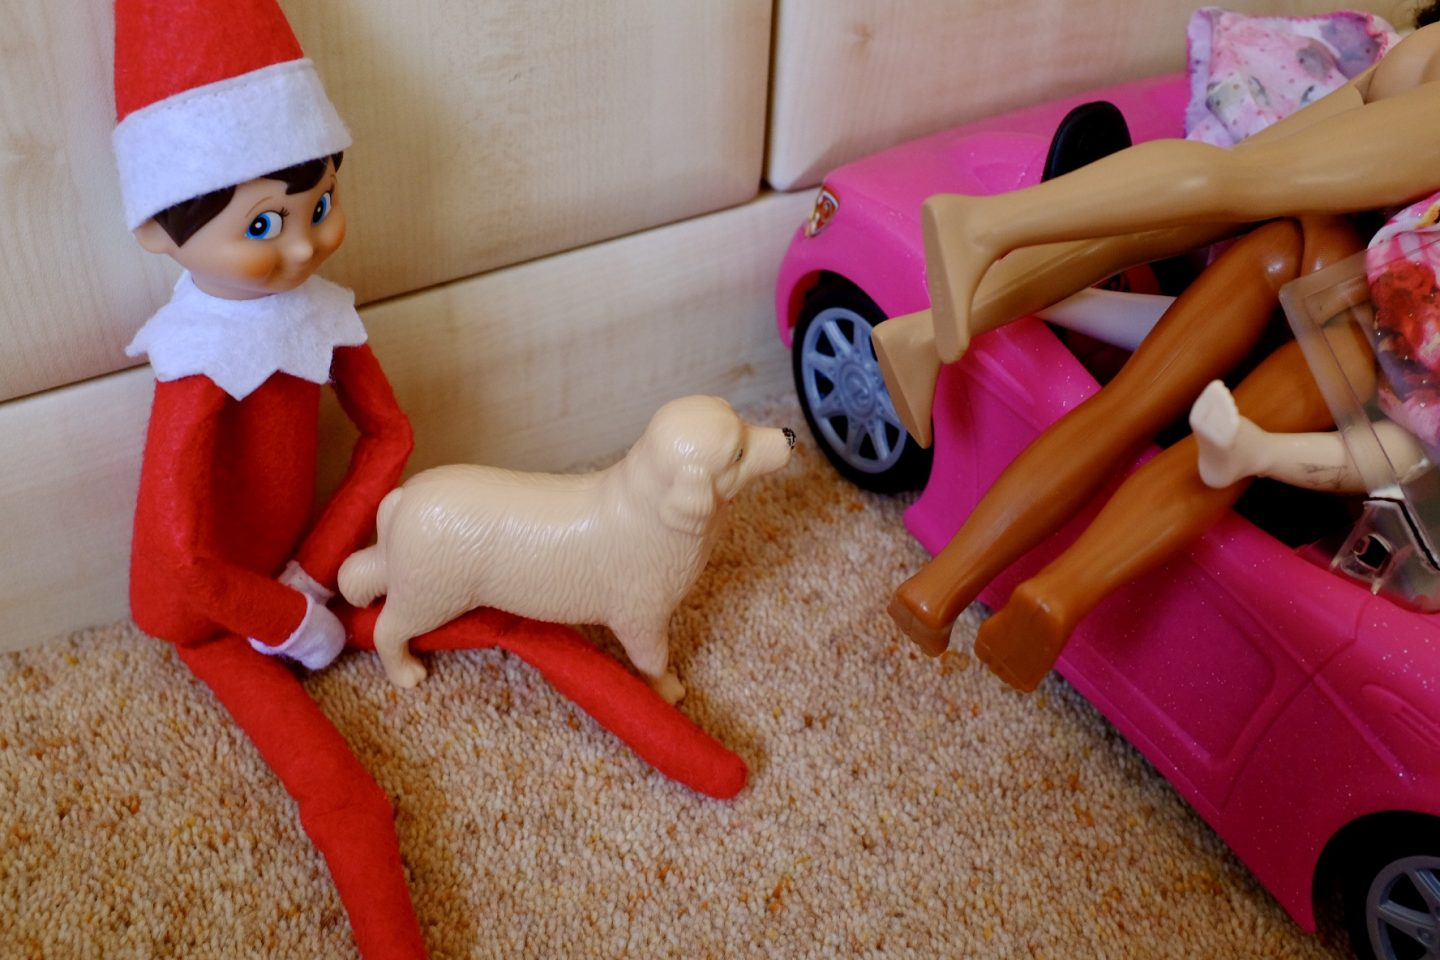 Elf walks the dog - naughty Elf ideas